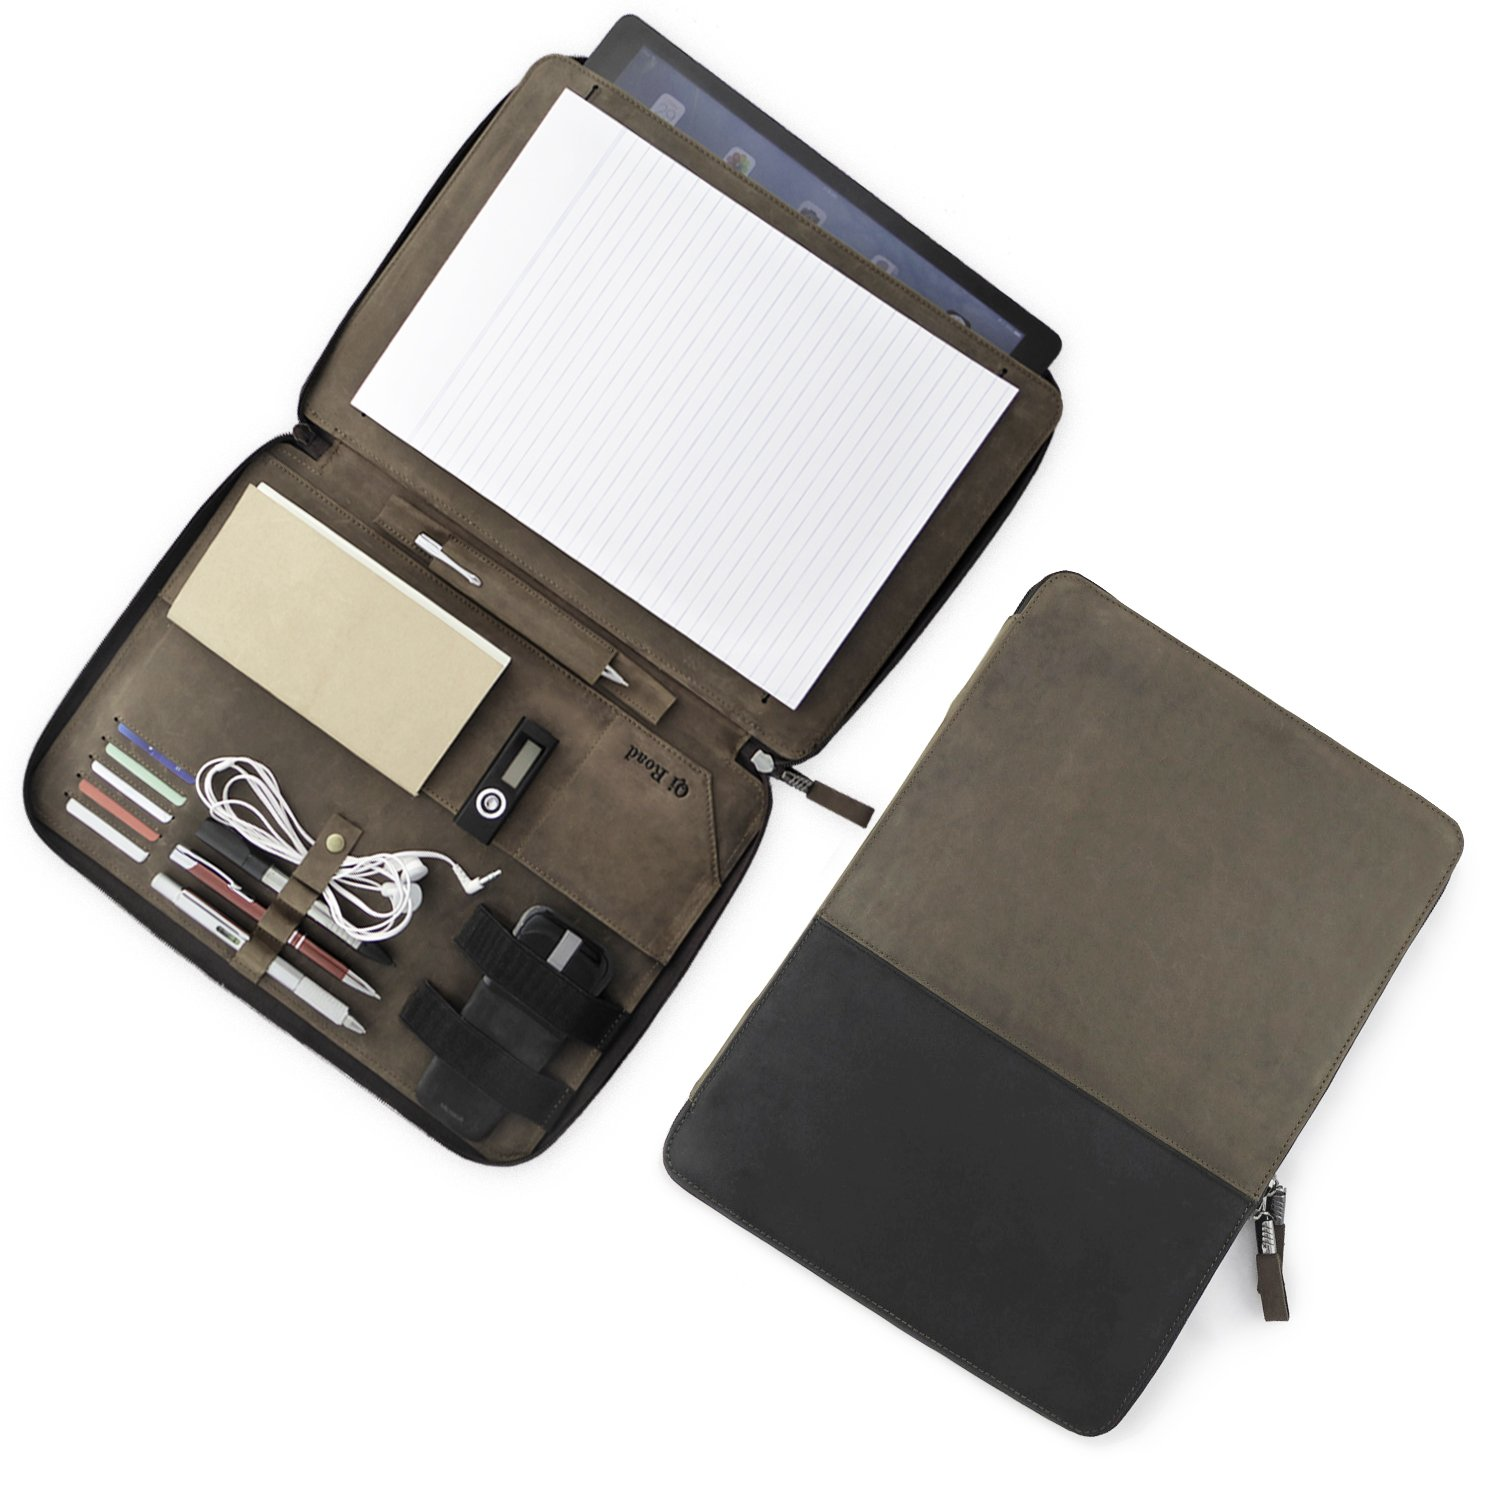 Leather Portfolio | Zippered Professional Business Document Organizer | Padfolio Case | Fits 13 Inch Tablet | Right & Left Handed Folder For Men & Women | Qi Road